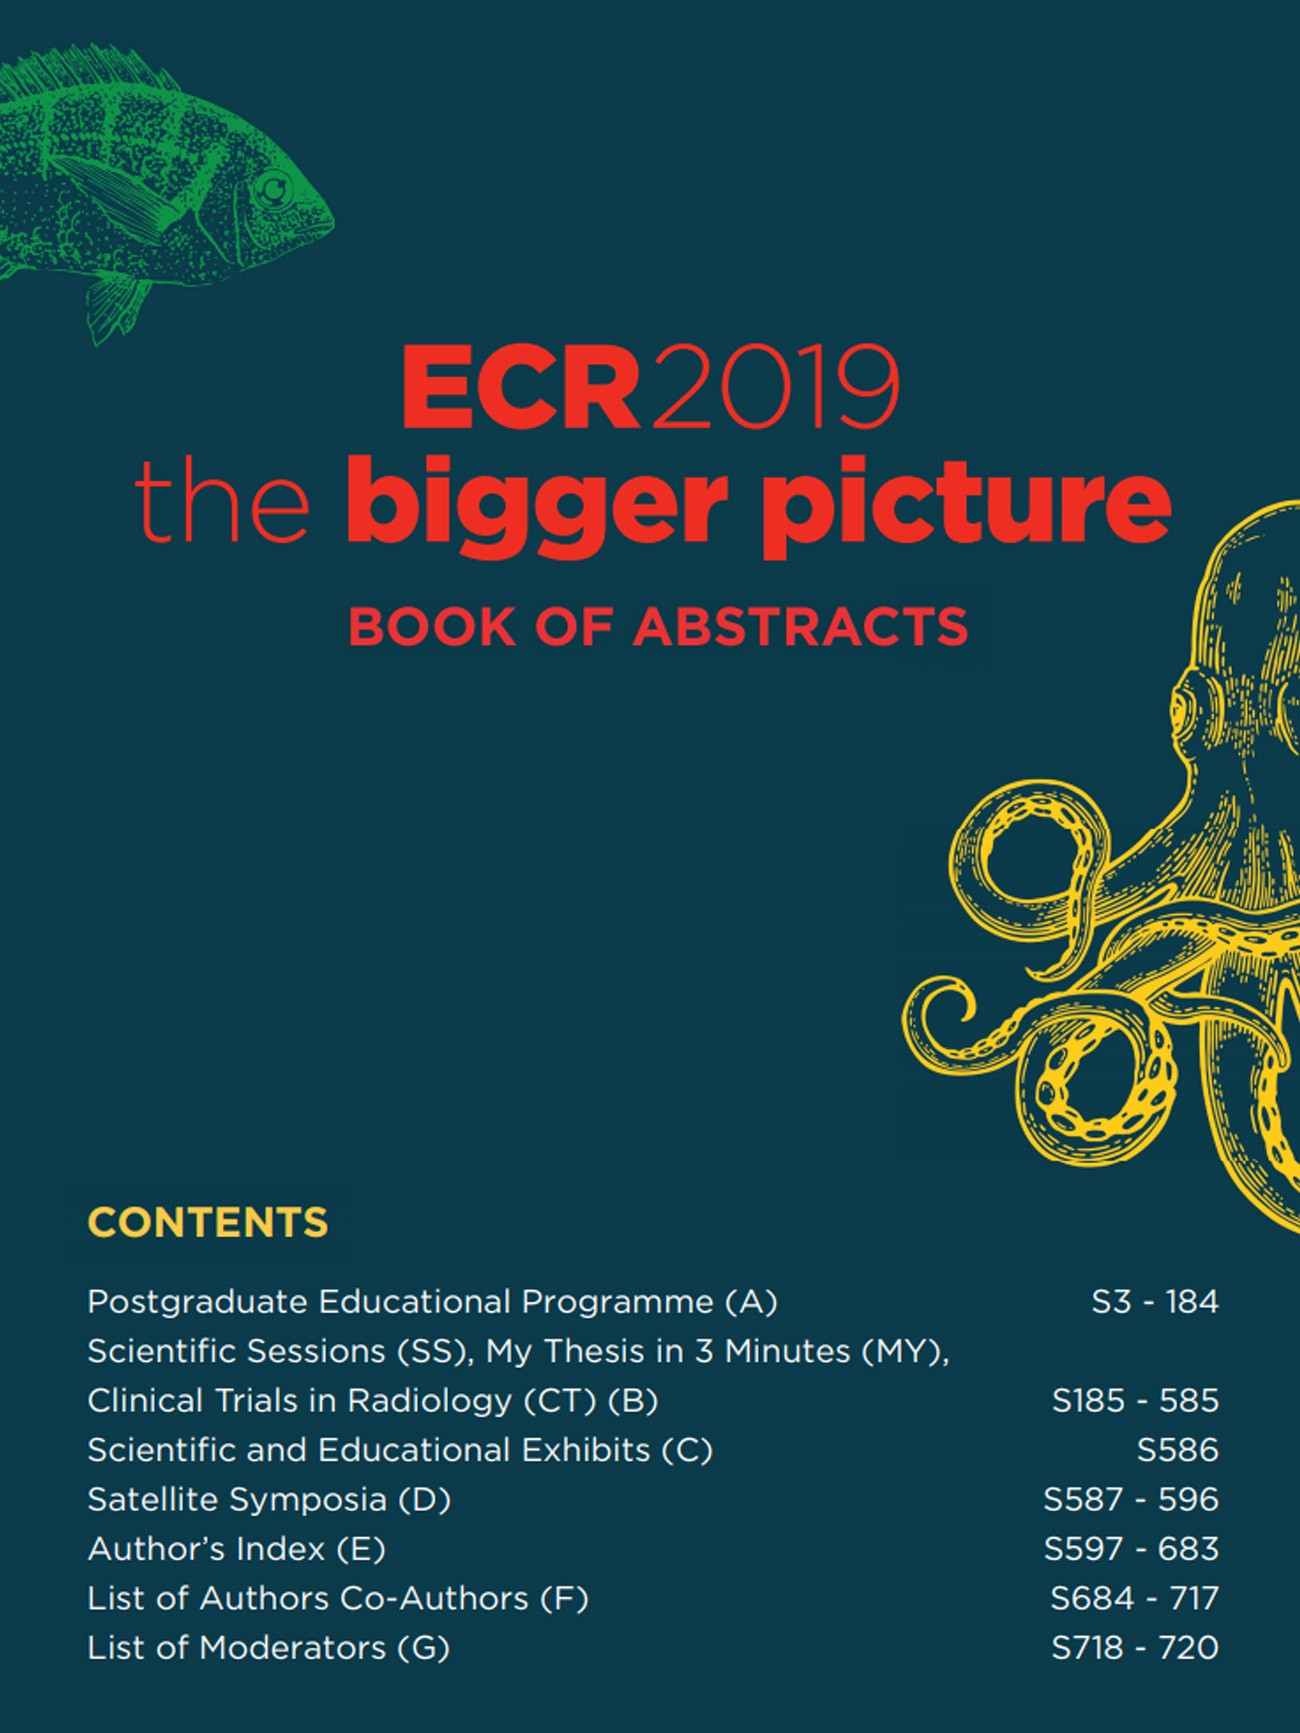 ECR 2019 | European Society of Radiology